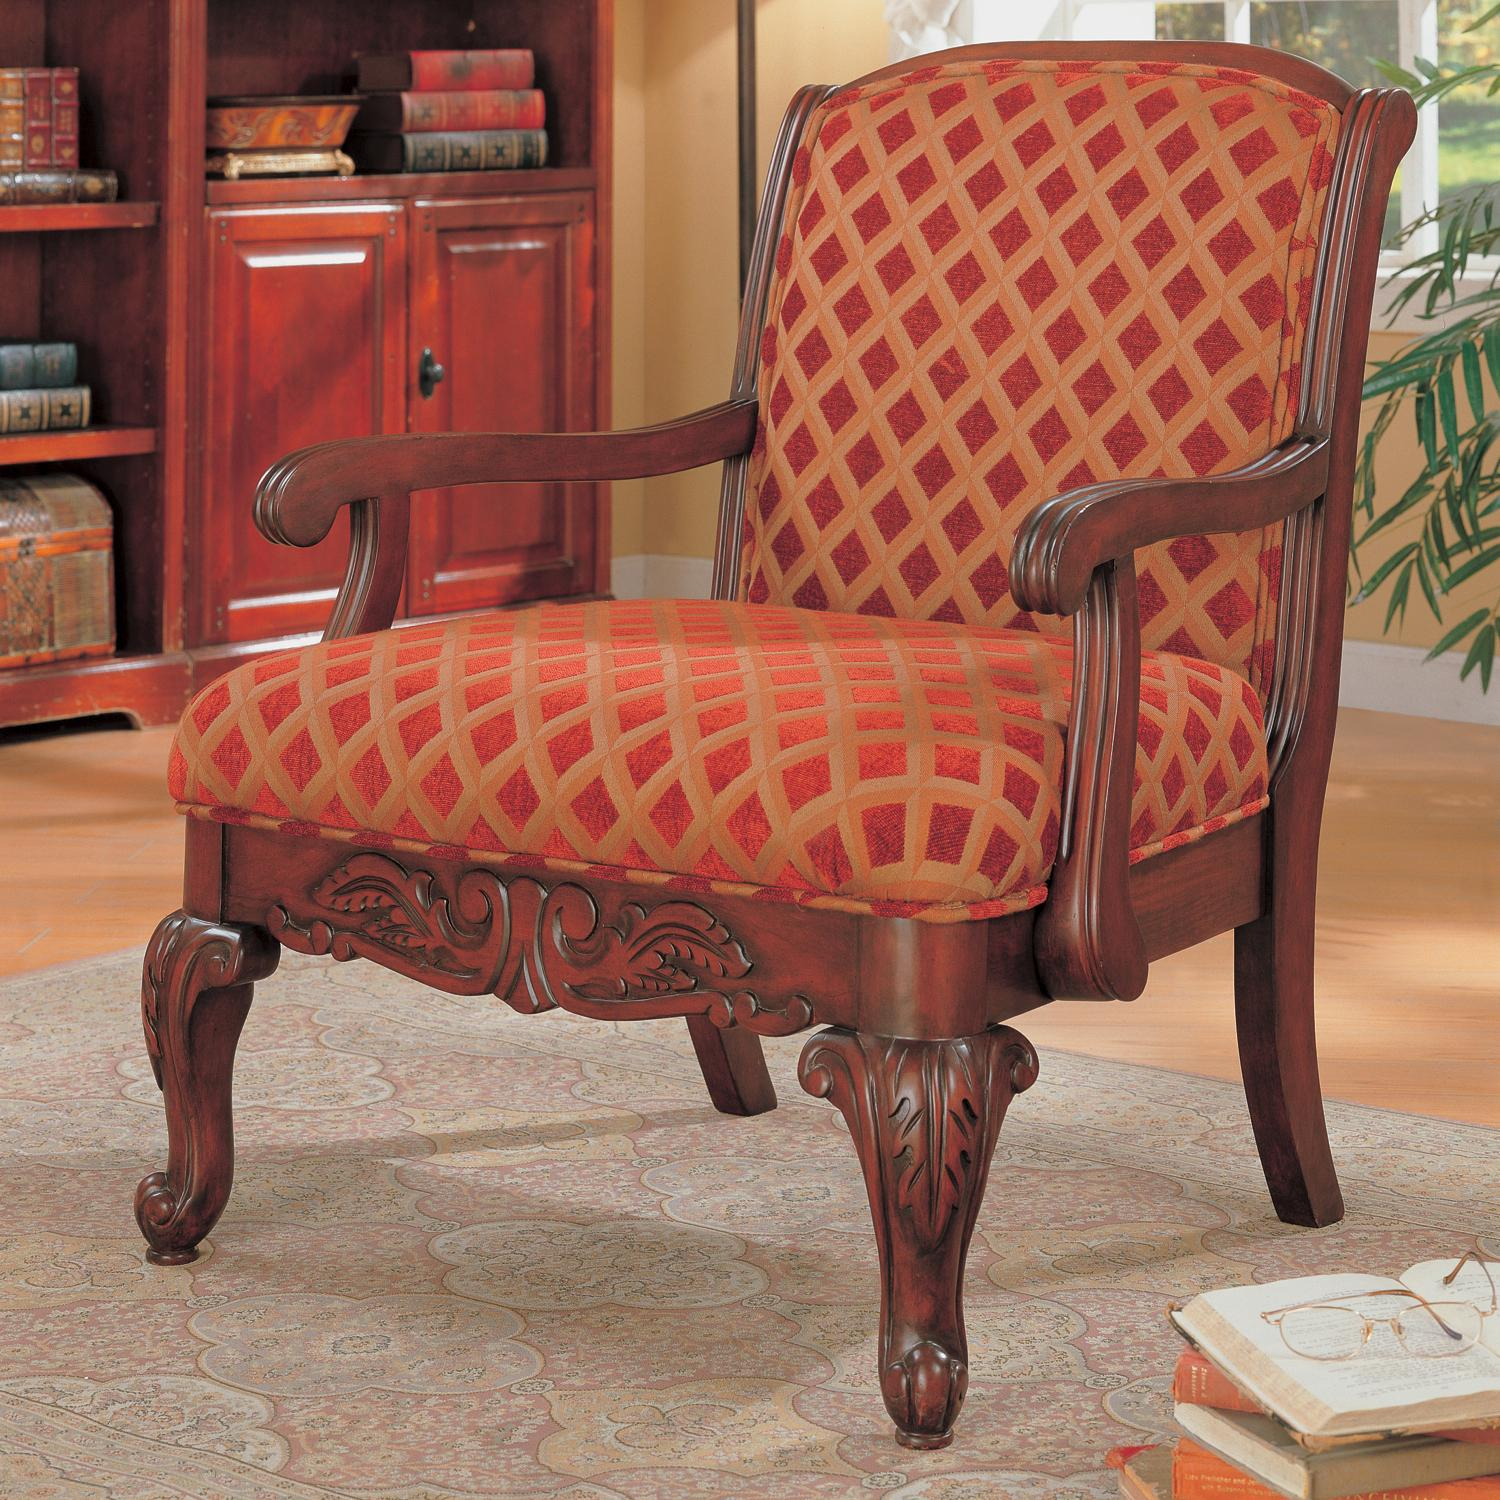 Coaster Accent Chair Accent Seating Upholstered Chair With Wood Armrests By Coaster At Miller Home